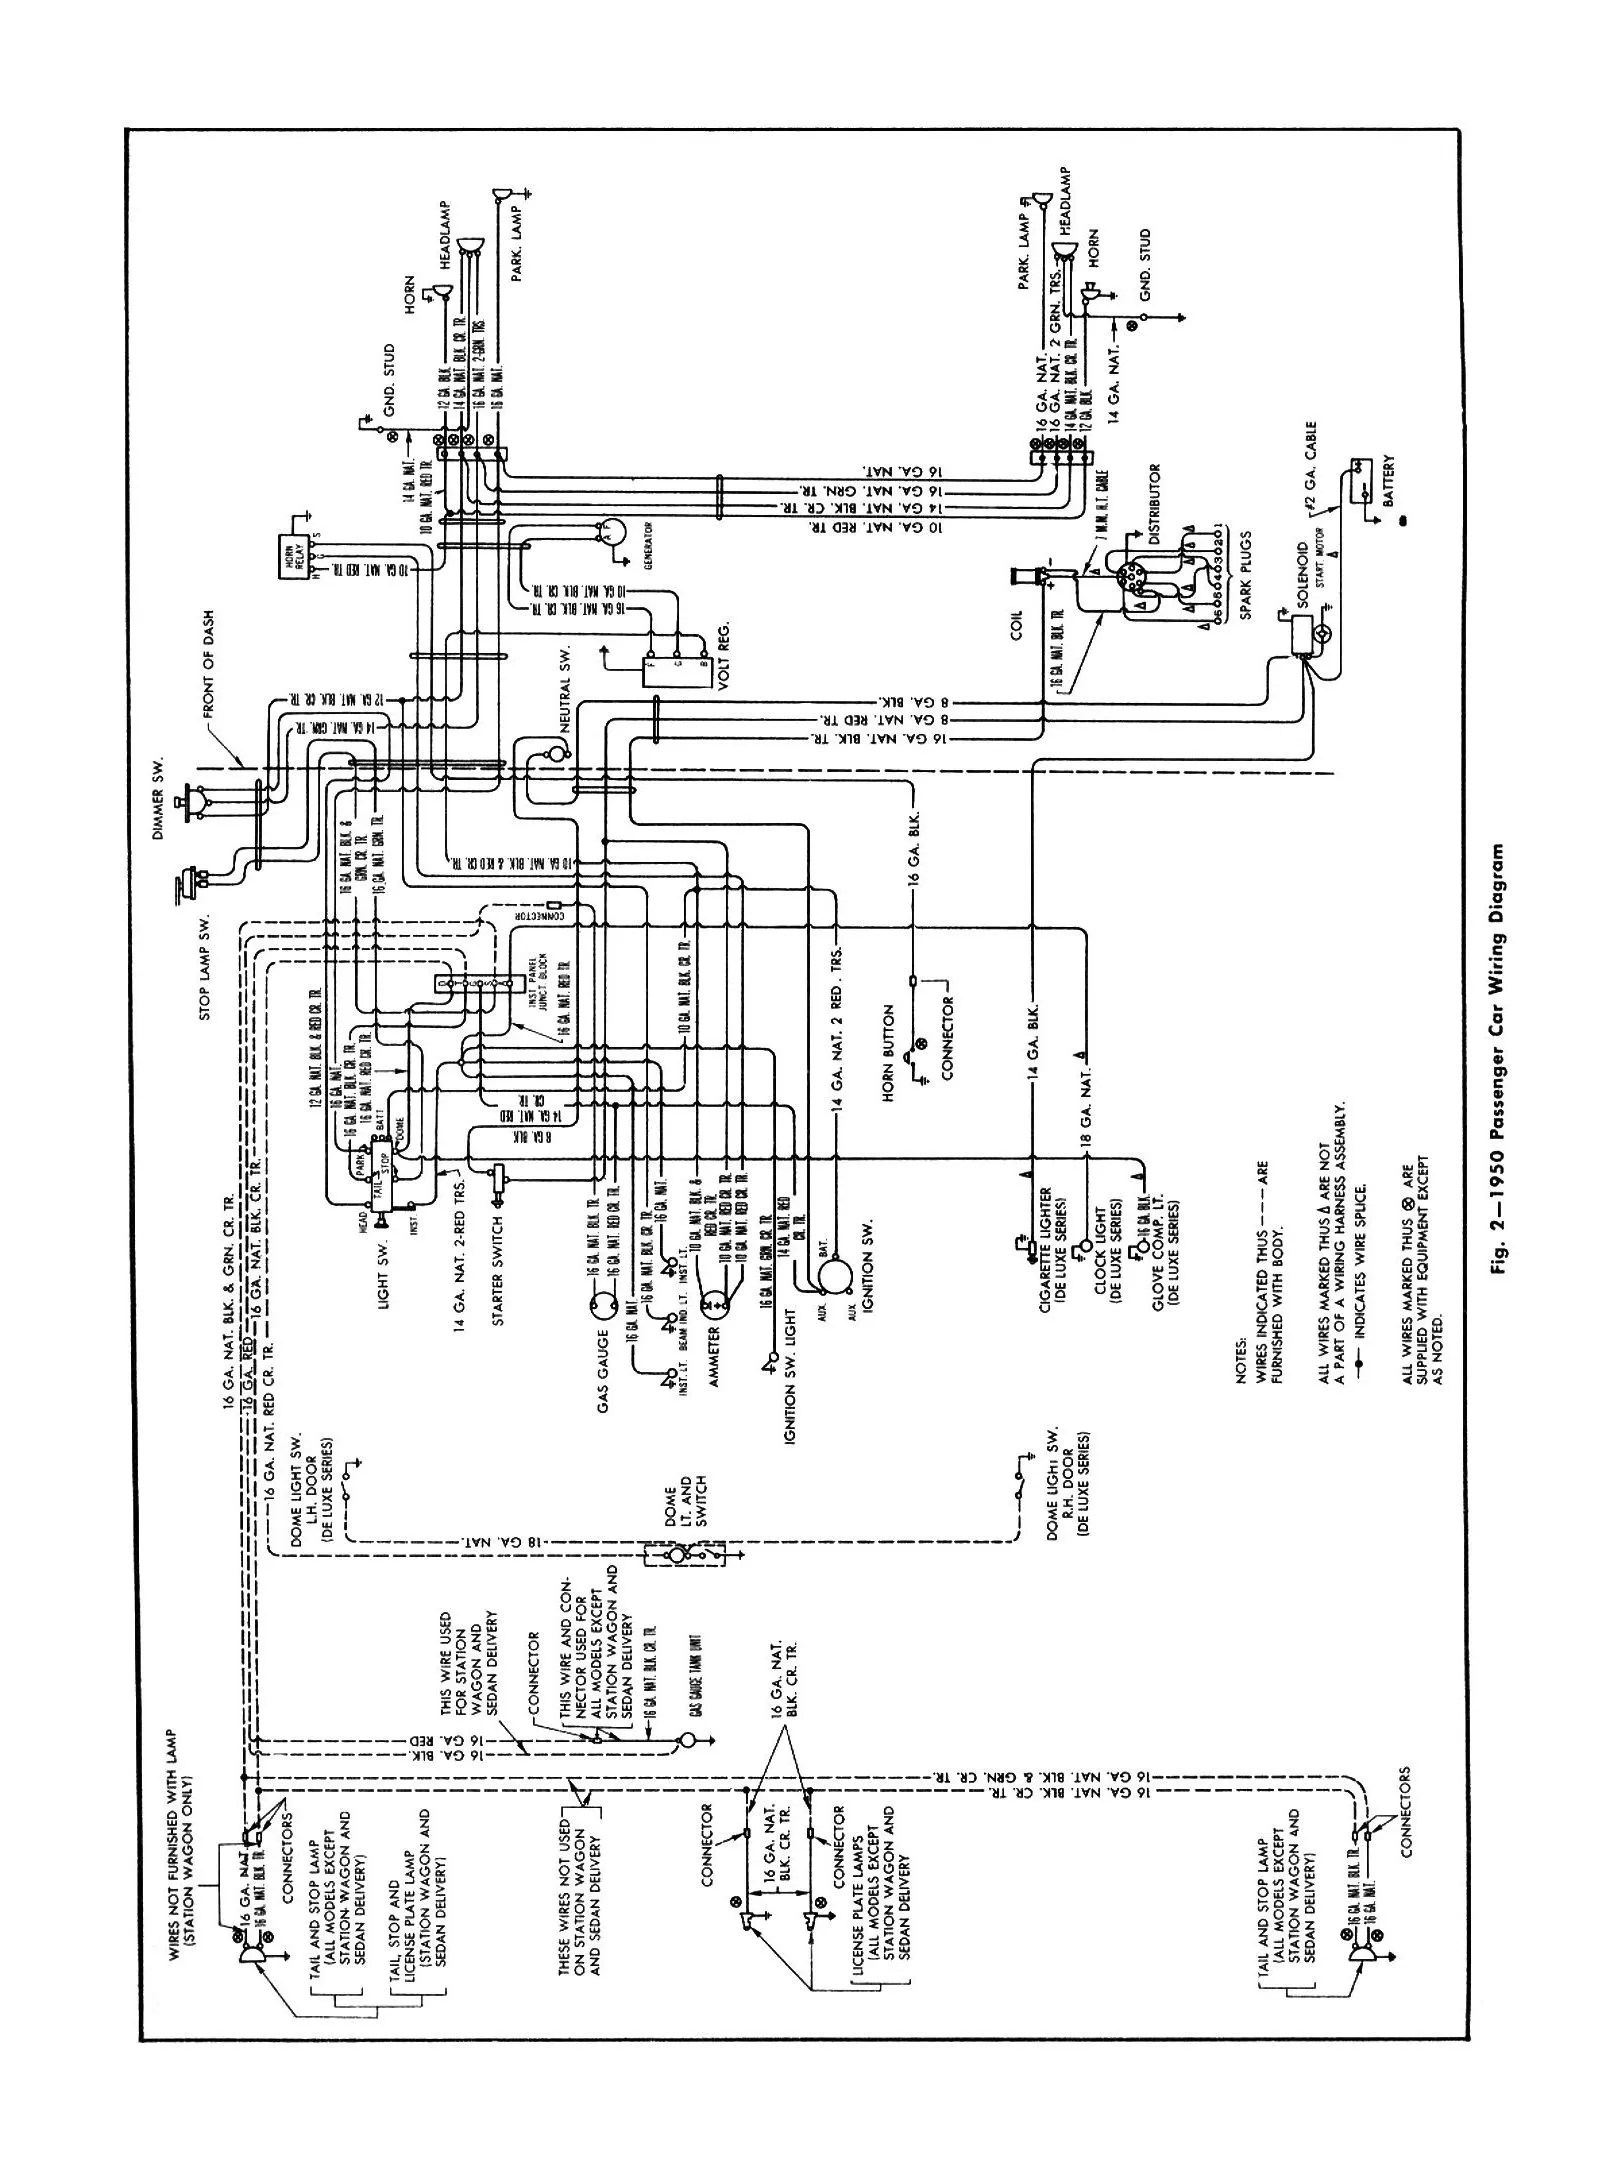 hight resolution of chevy wiring diagrams 1955 235 chevy engine diagram 235 chevy engine wiring diagram